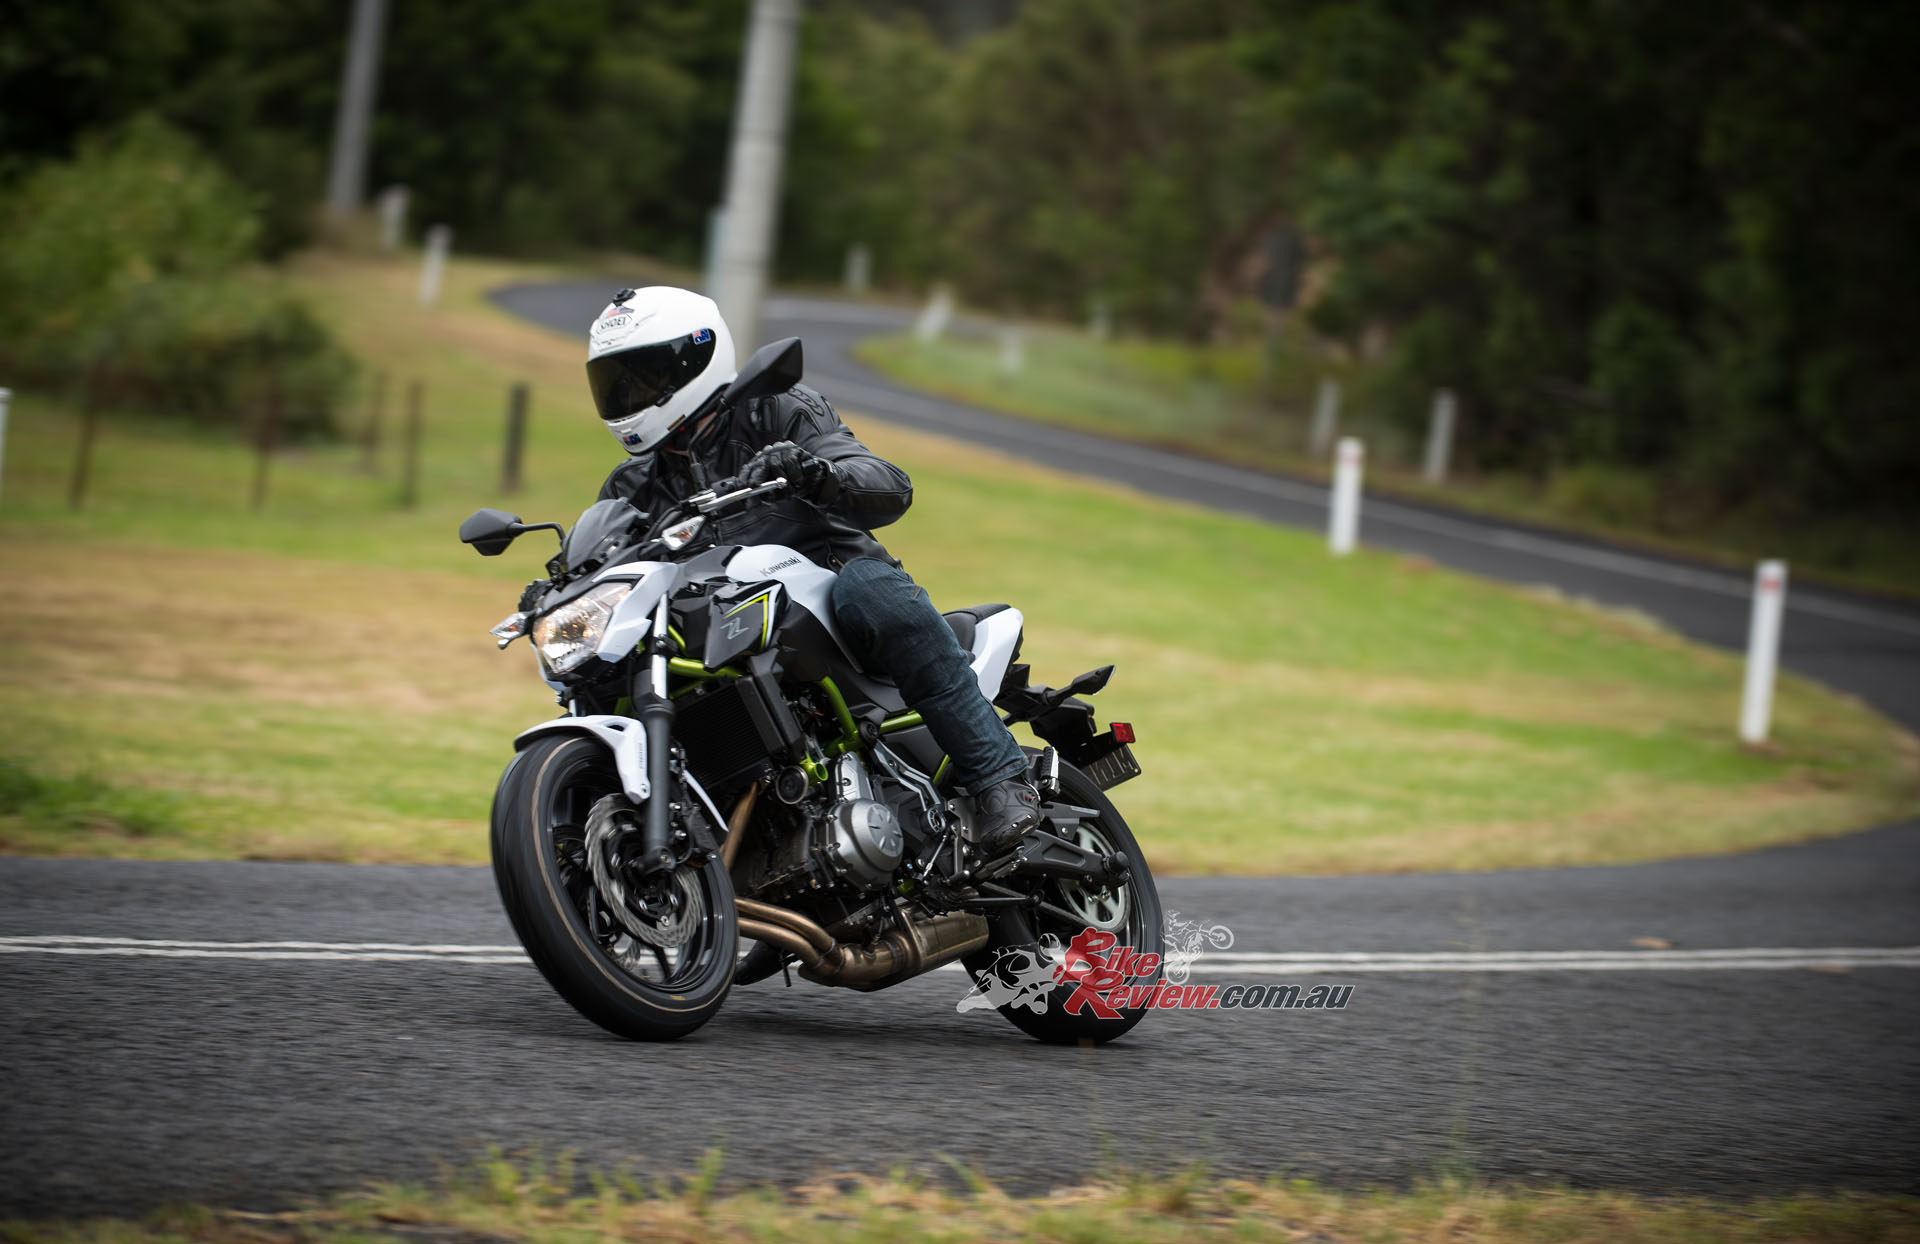 I had so much fun on the Z650L. I spent an hour going up and down this one section of road and was grinning from ear to ear!